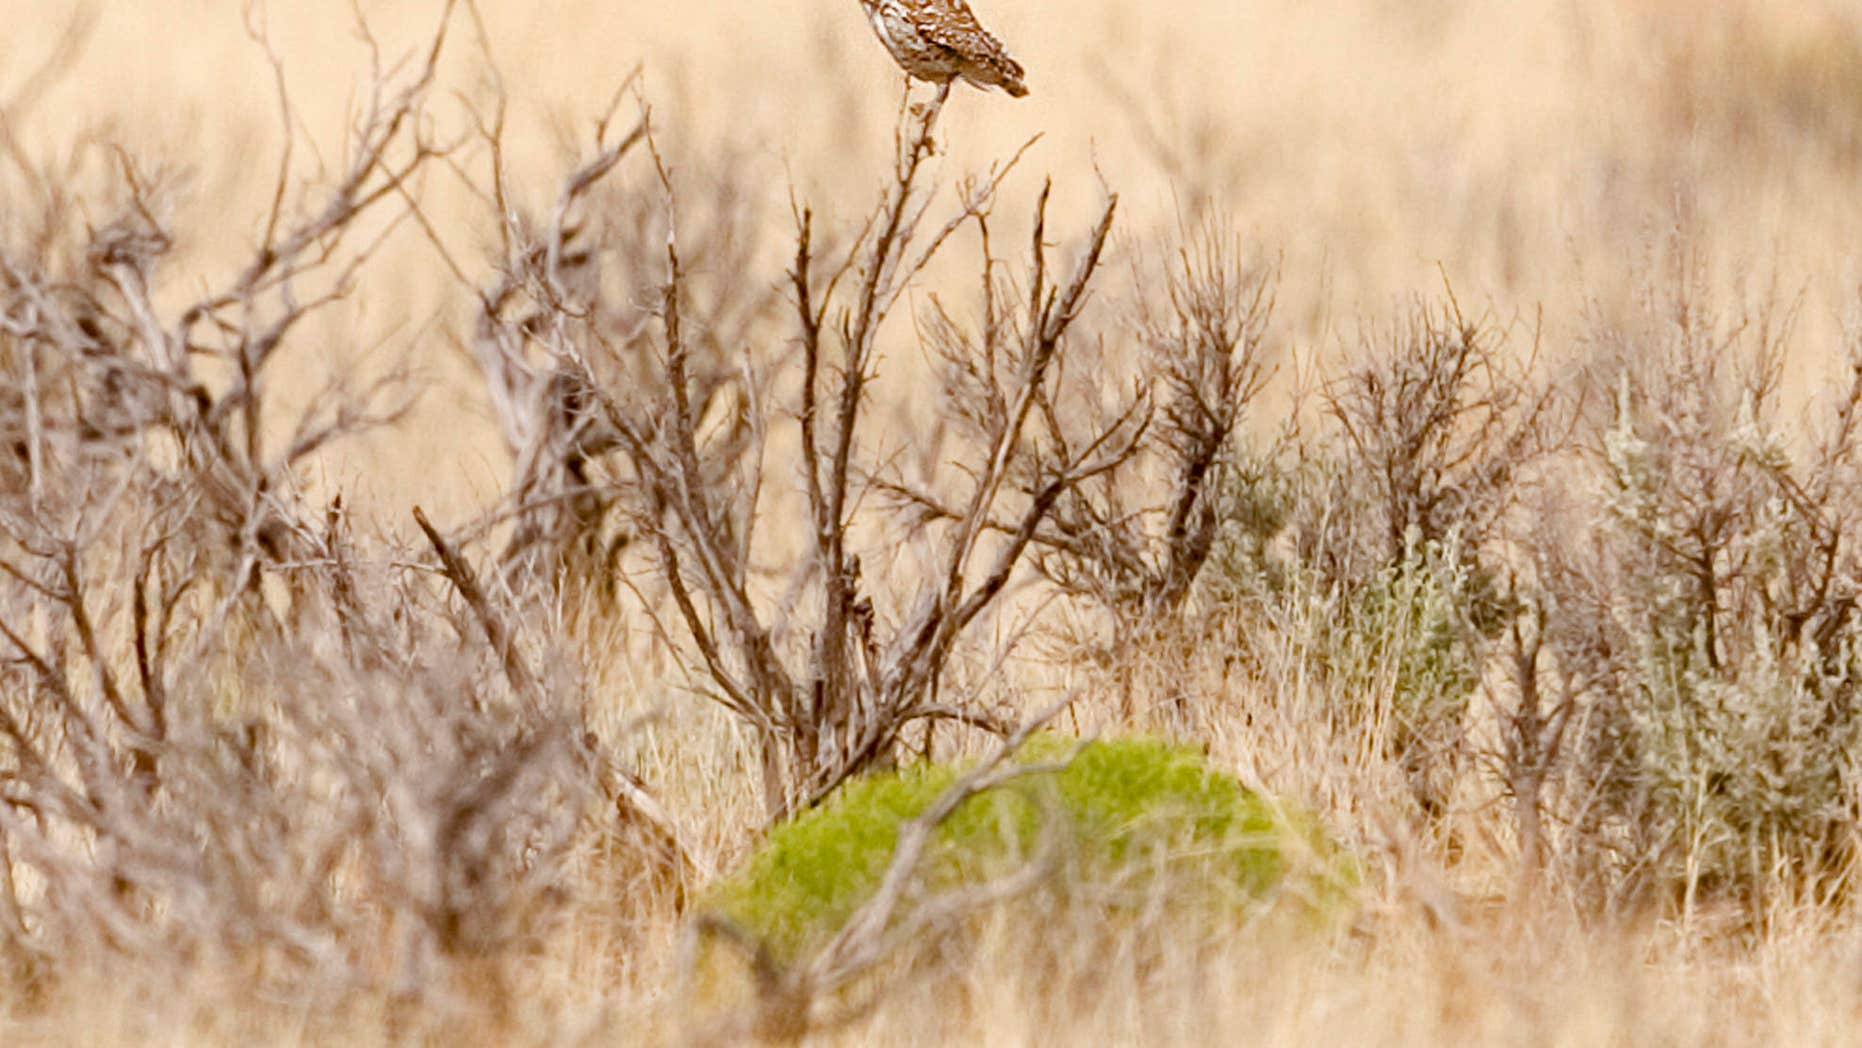 FILE - In this July 23, 2004 file photo, a burrowing owl perches on a bush near Angel Peak outside Bloomfield, N.M.